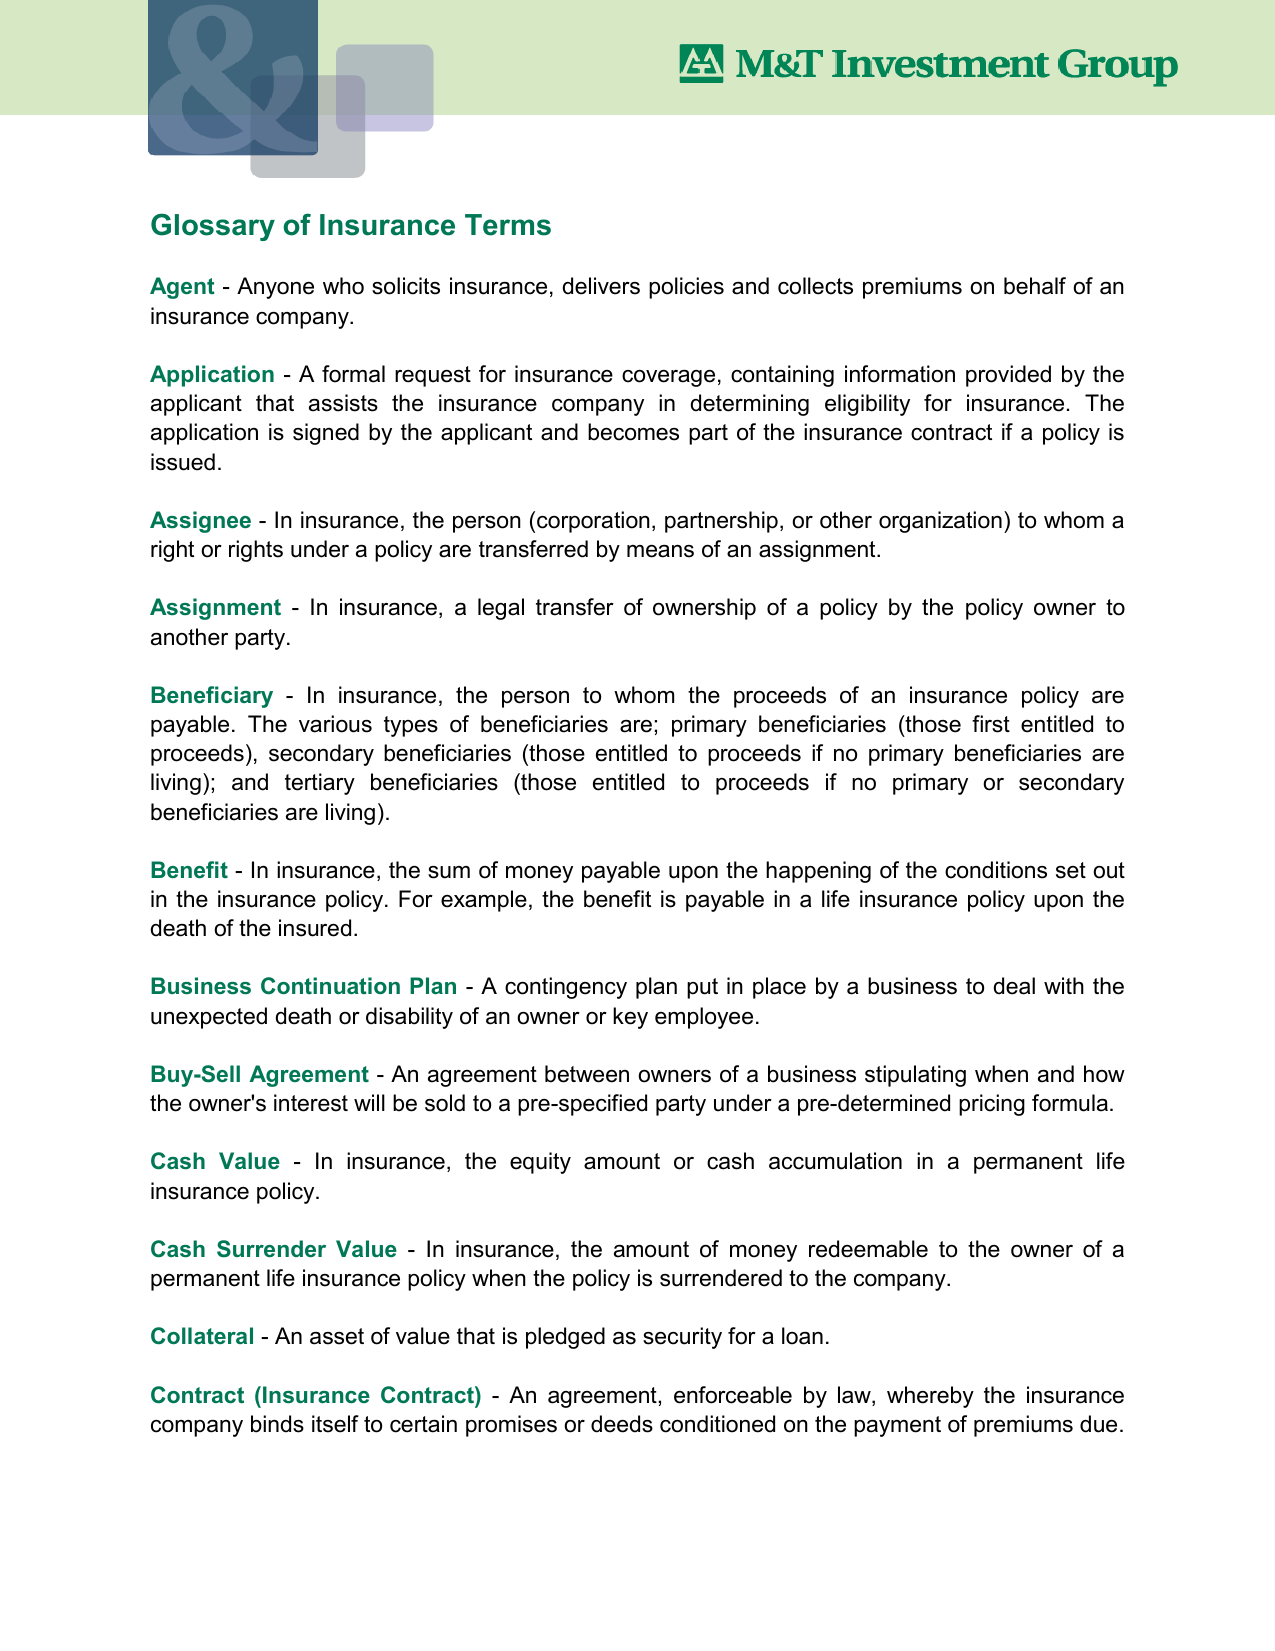 Glossary Of Insurance Terms